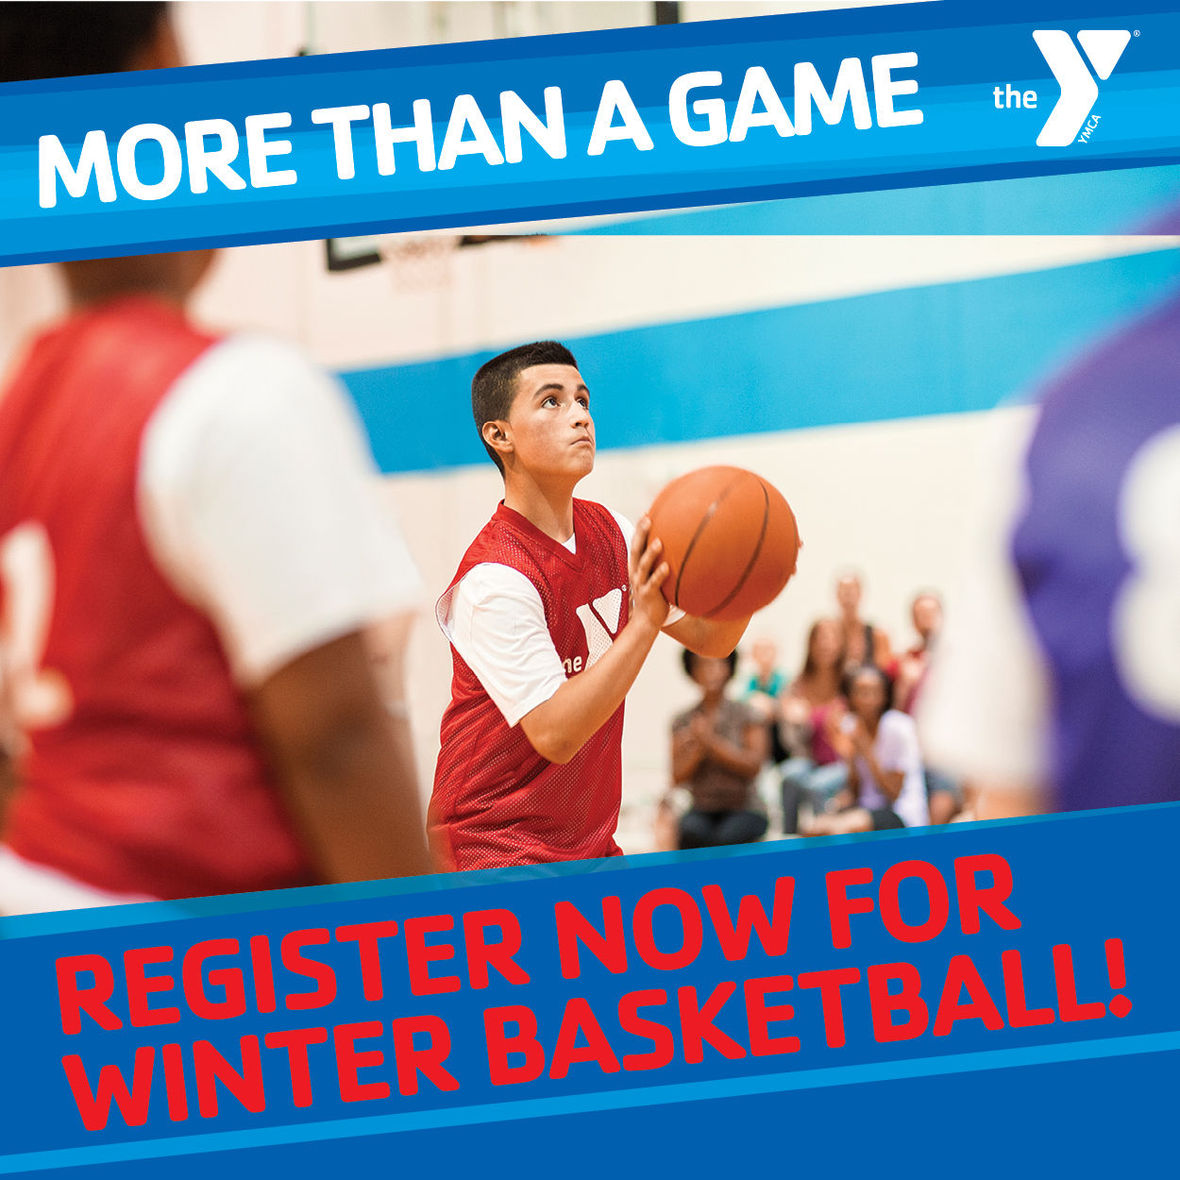 ymca newsletter